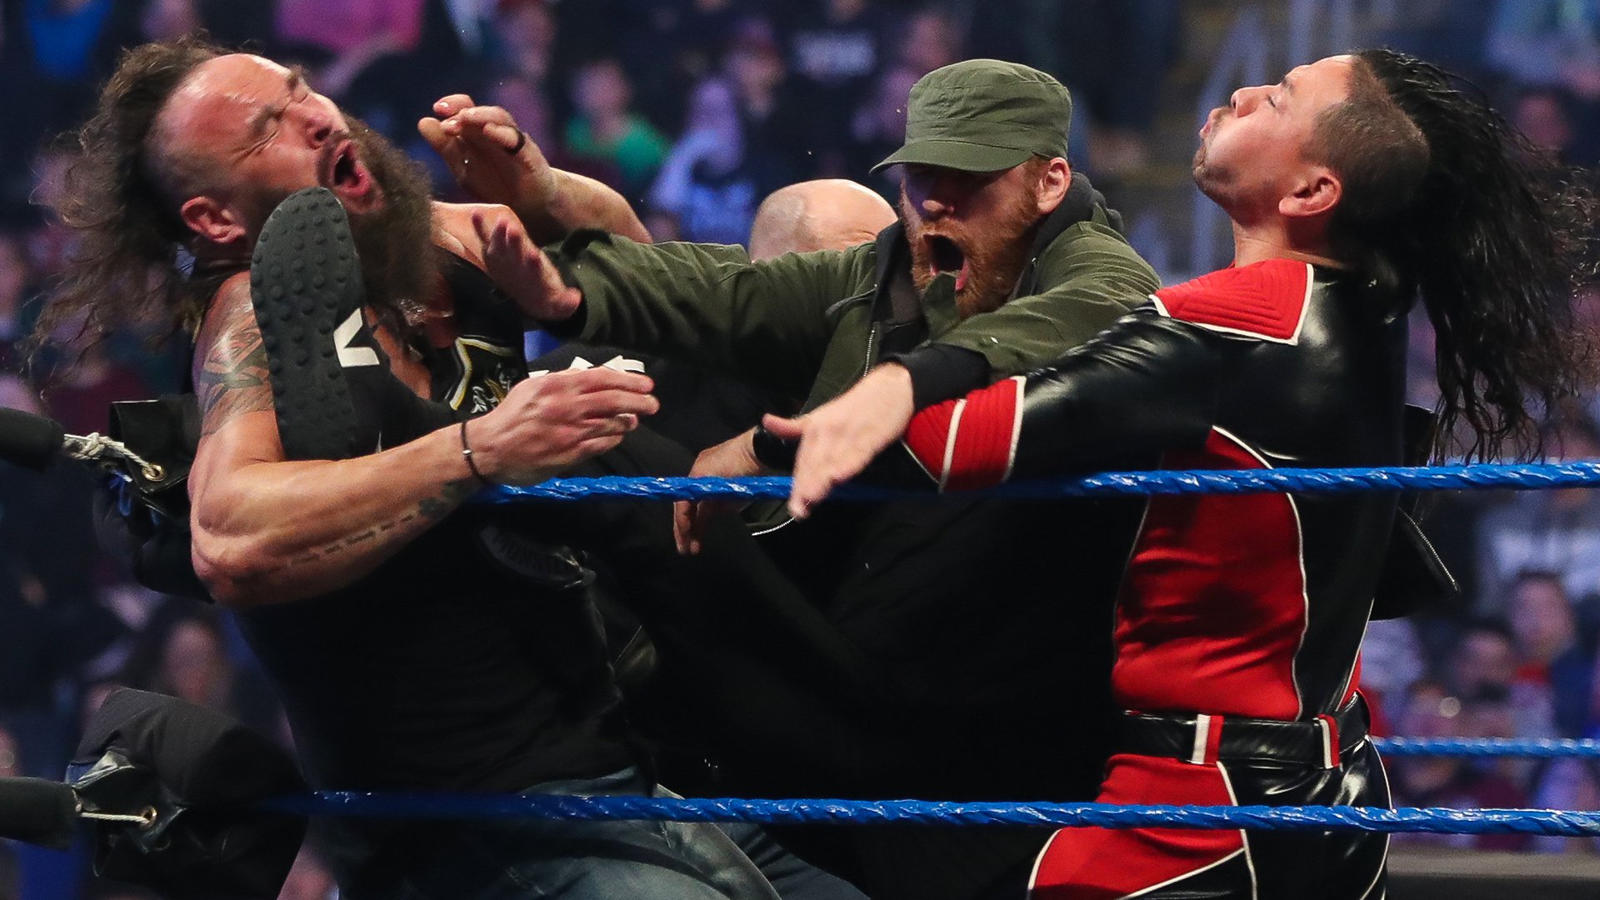 WWE Friday Night Smackdown Full Results: February 28, 2020 3